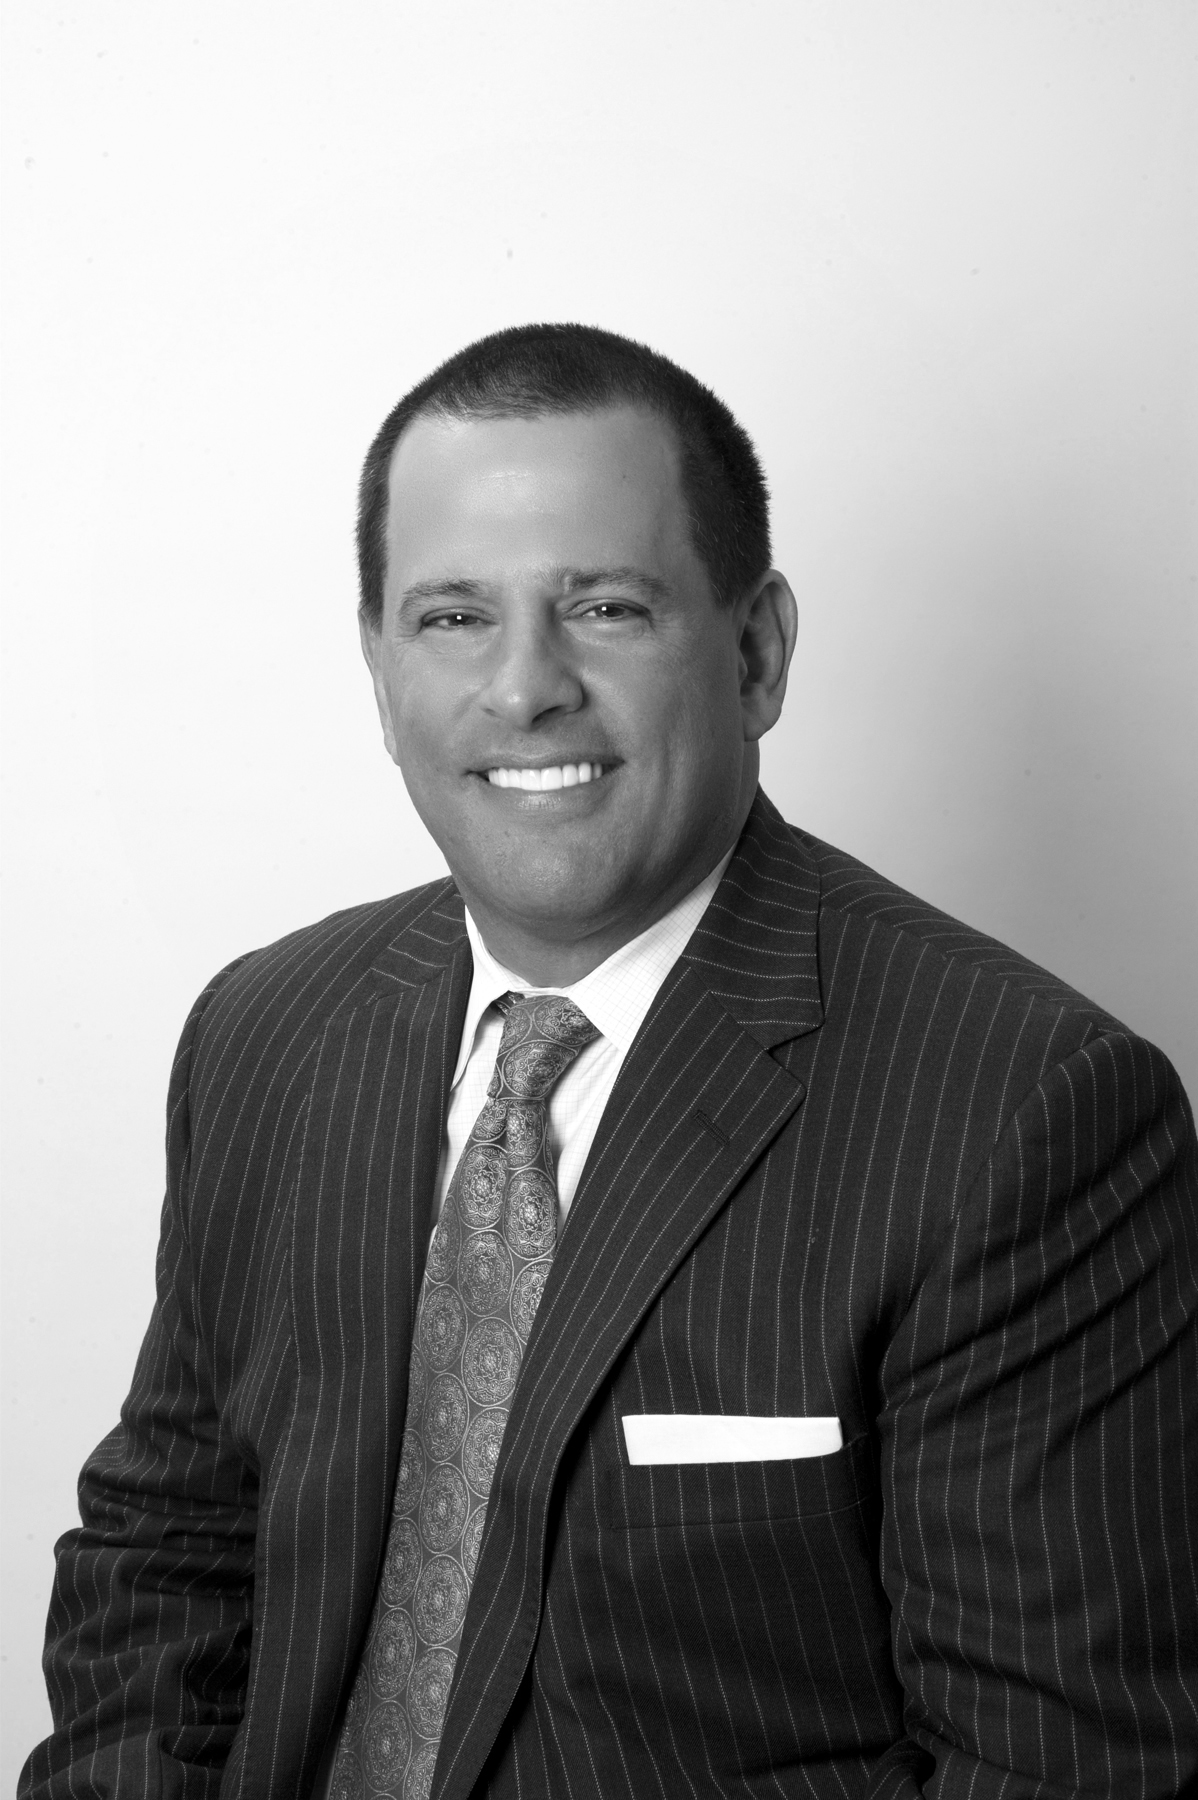 Christopher McMahon, financial advisor Carnegie PA